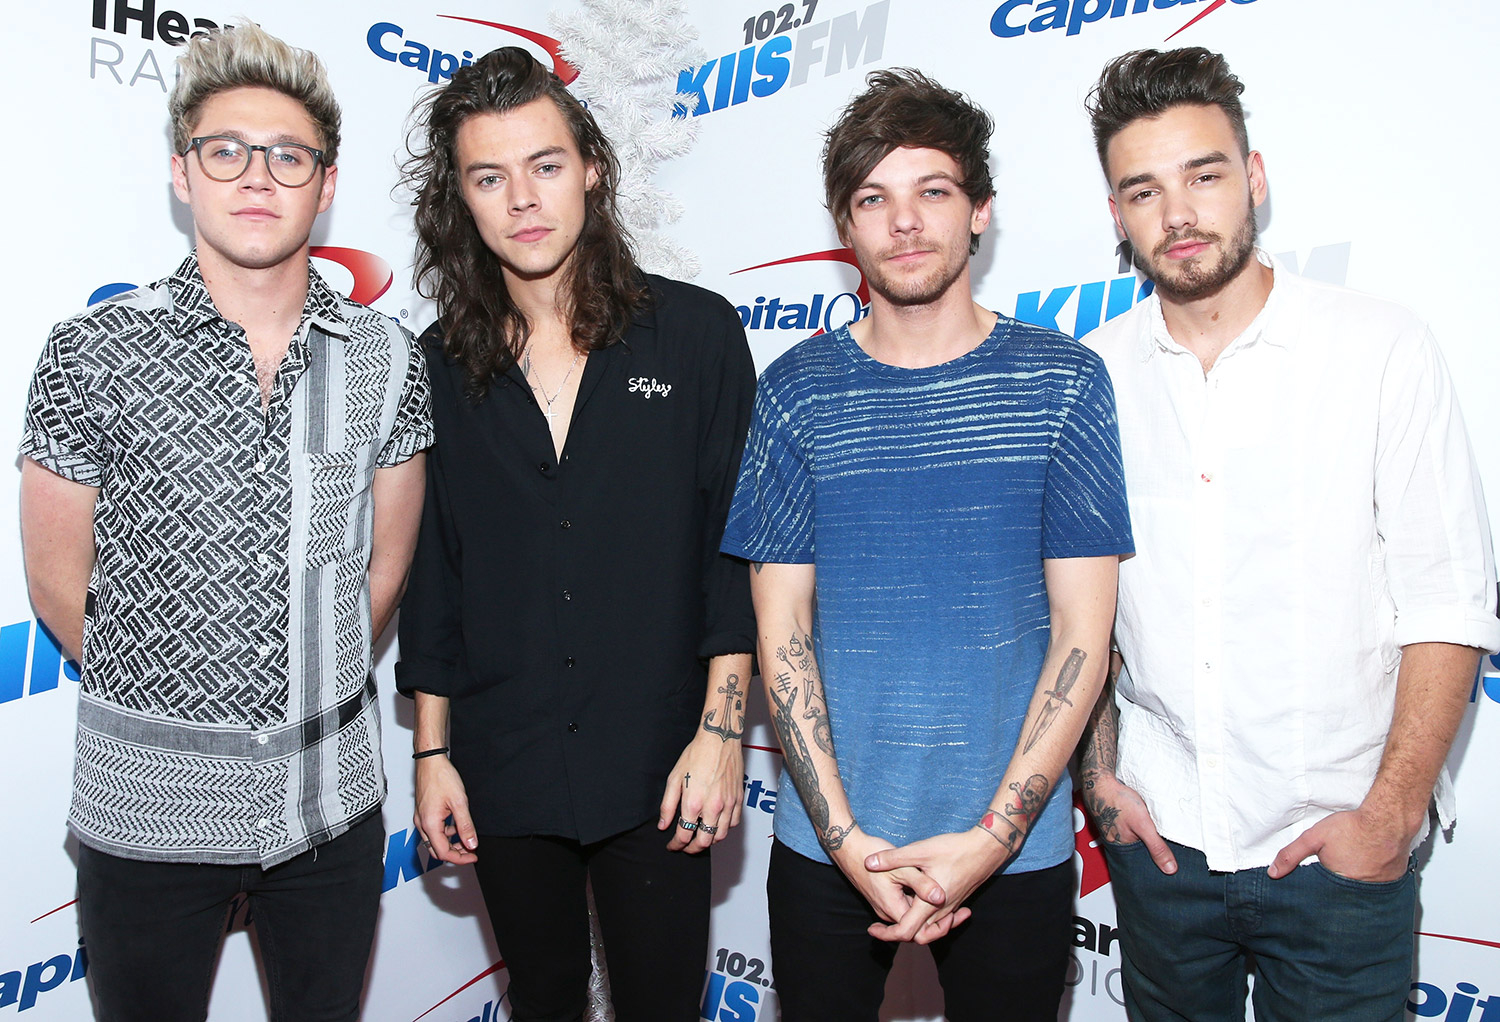 Niall Horan, Harry Styles, Louis Tomlinson and Liam Payne of One Direction